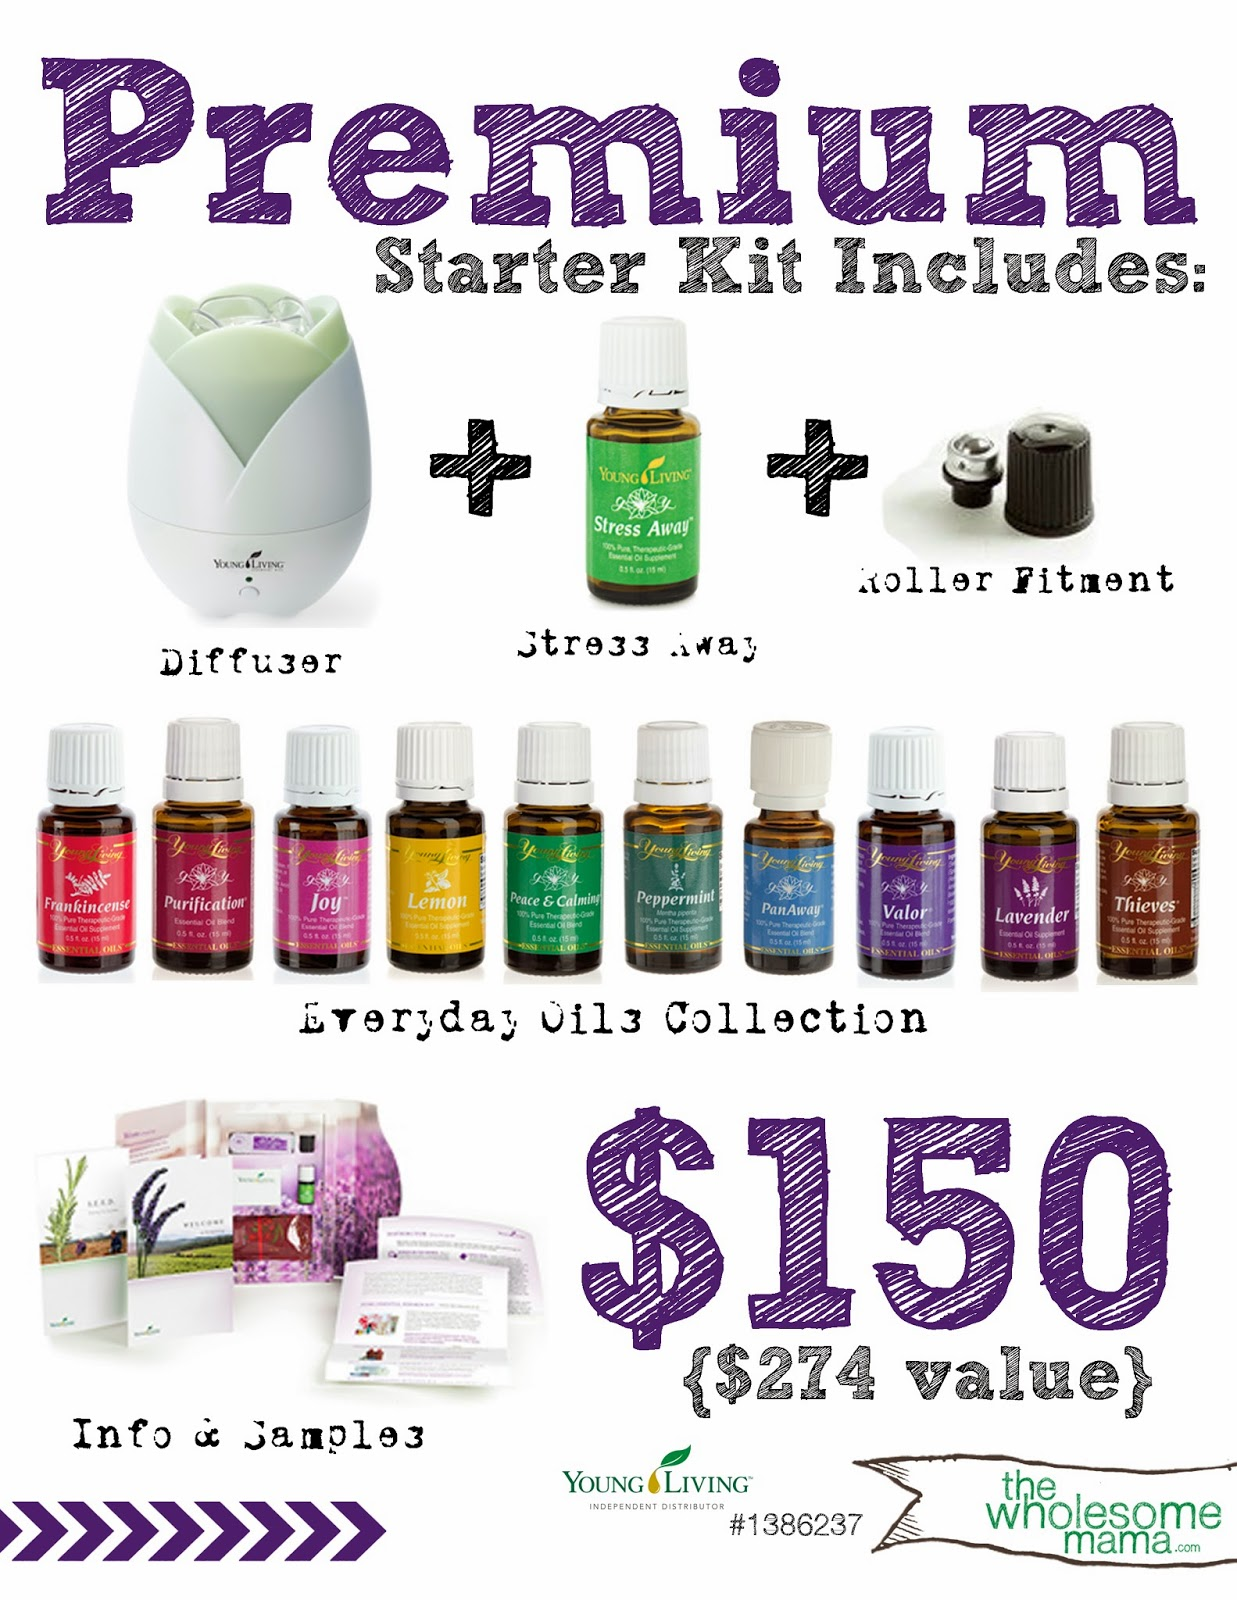 https://www.youngliving.com/signup/?sponsorid=1386237&enrollerid=1386237